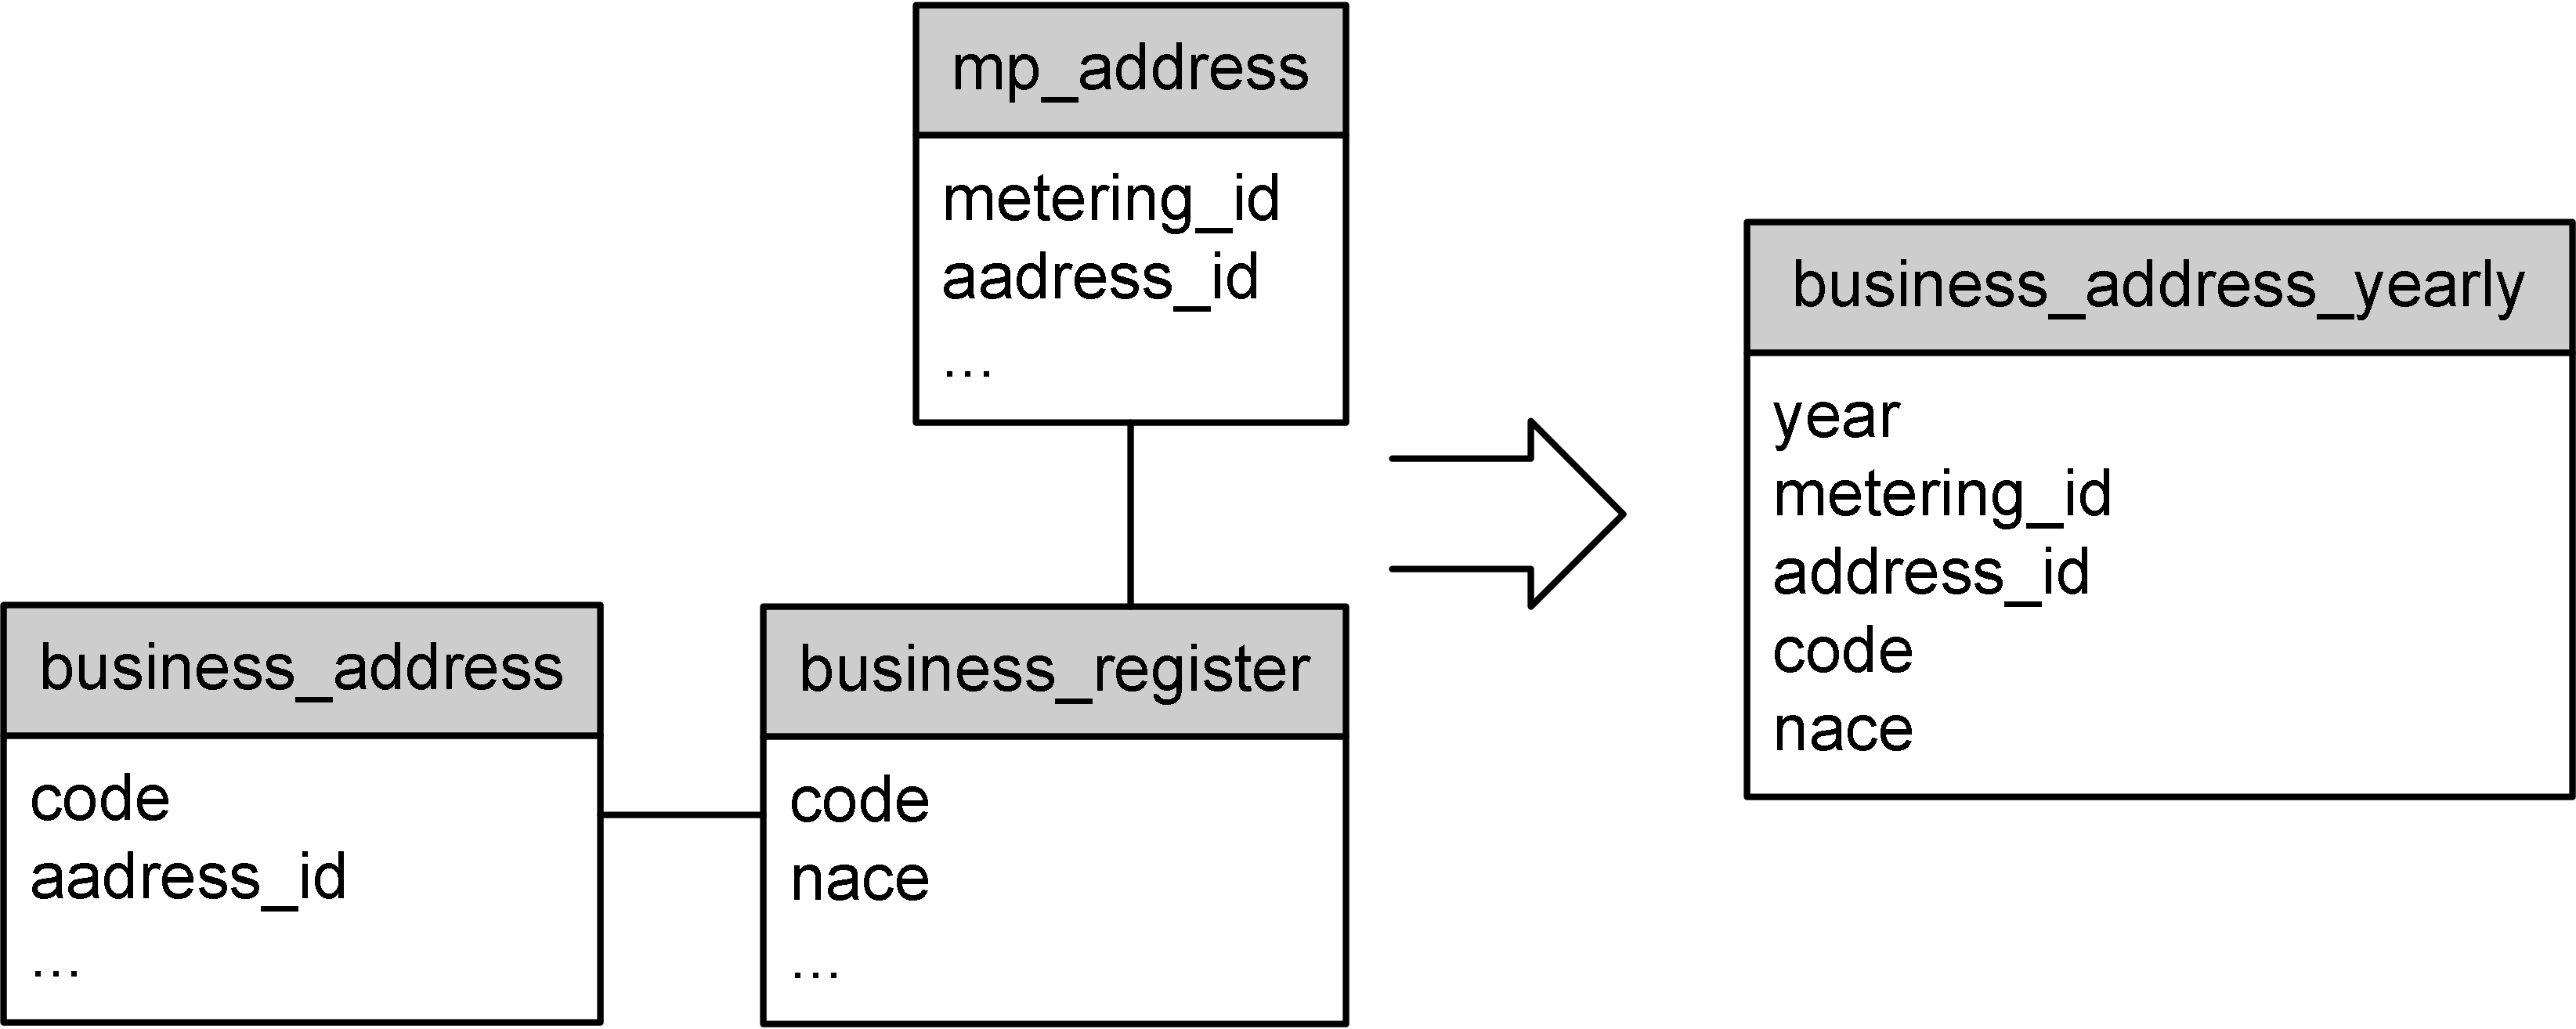 WP3 Report4 methodology business address.png